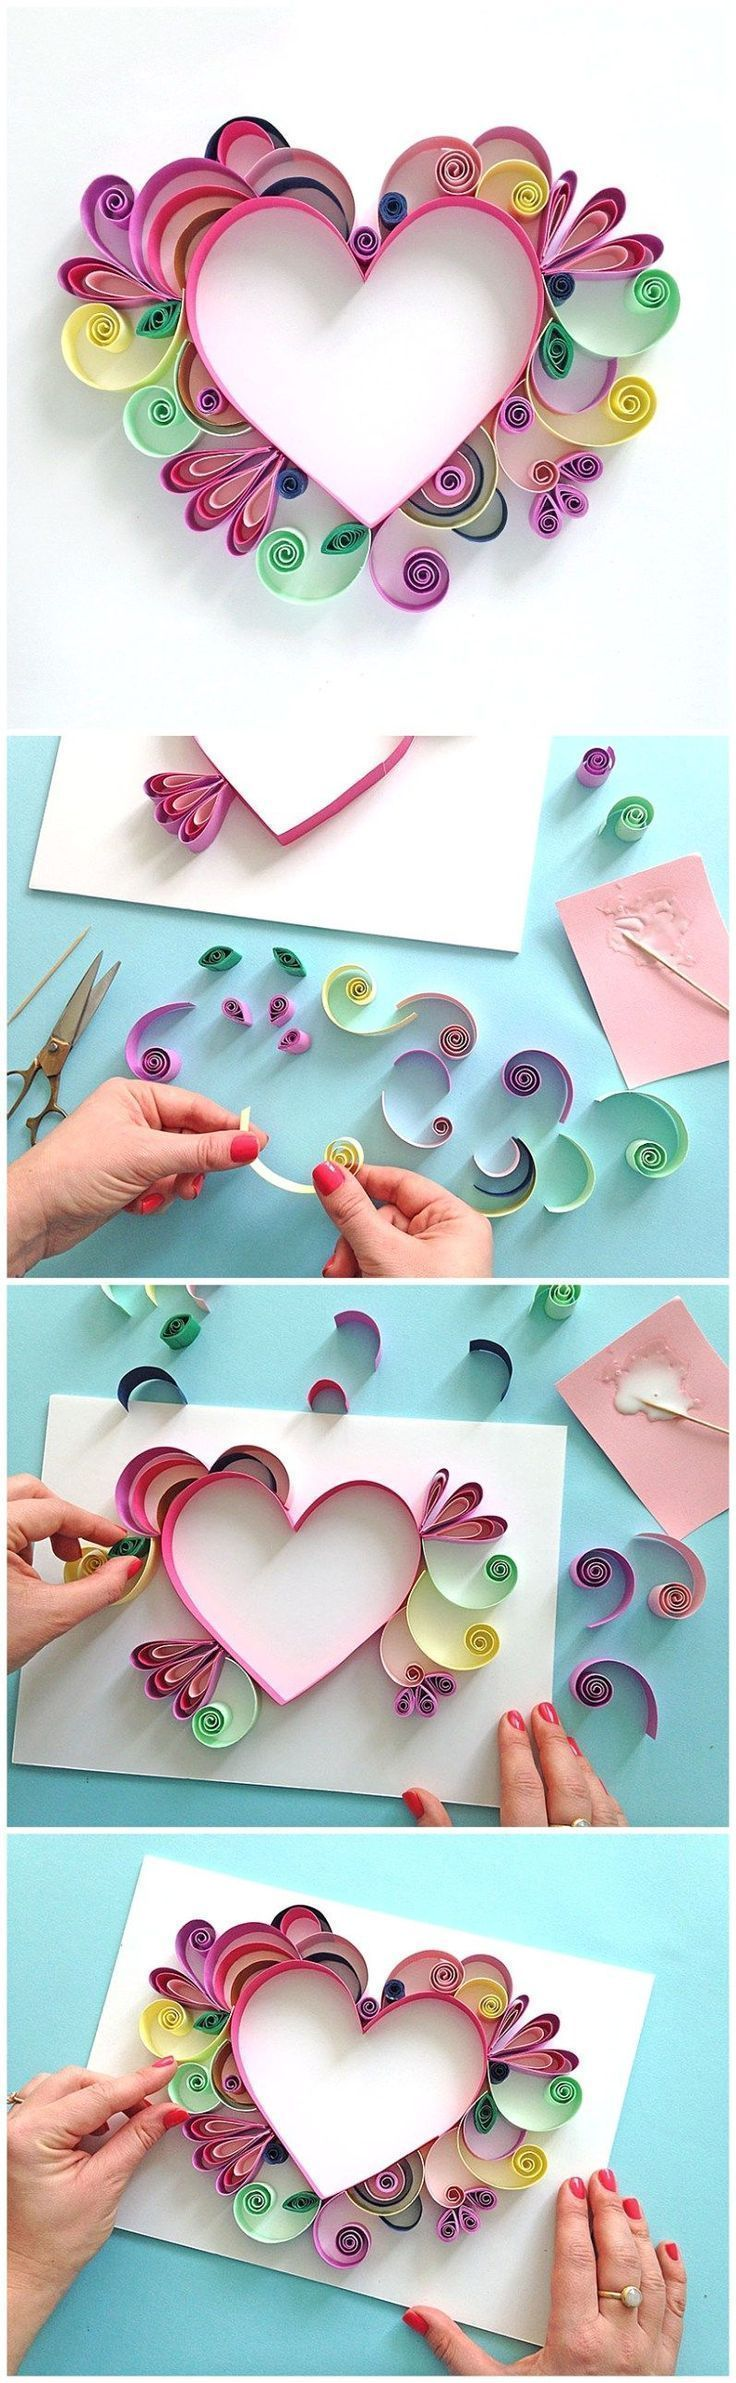 The best do it yourself gifts fun clever and unique diy craft the best do it yourself gifts fun clever and unique diy craft projects and ideas for christmas birthdays thank you or any occasion dreaming solutioingenieria Images